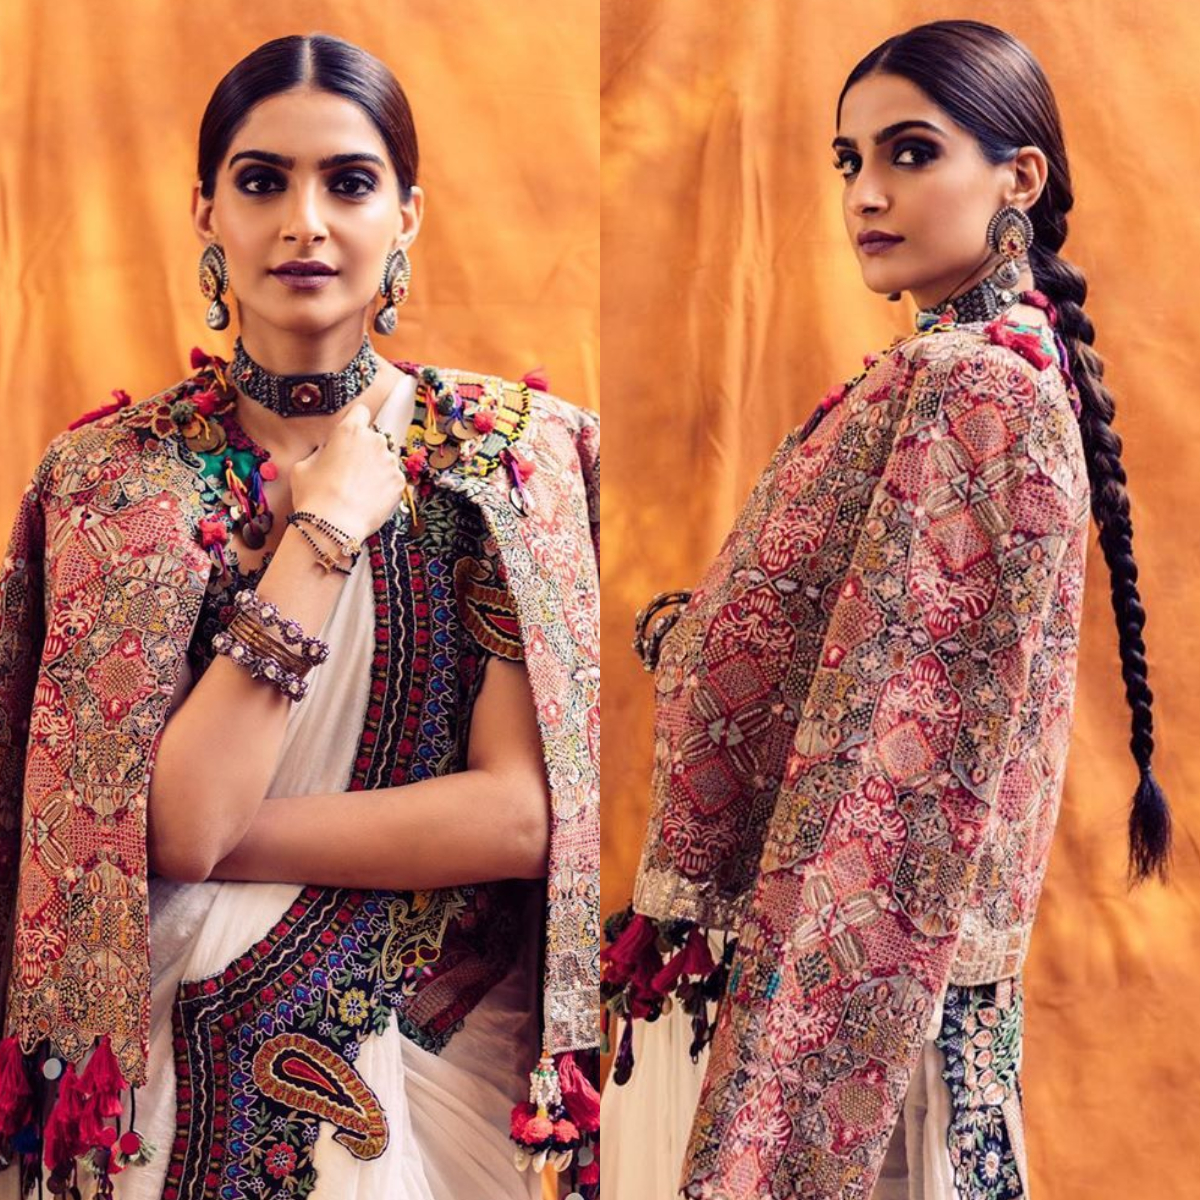 Sonam Kapoor's modern take on the traditional saree is perfect for you to rock this festive season